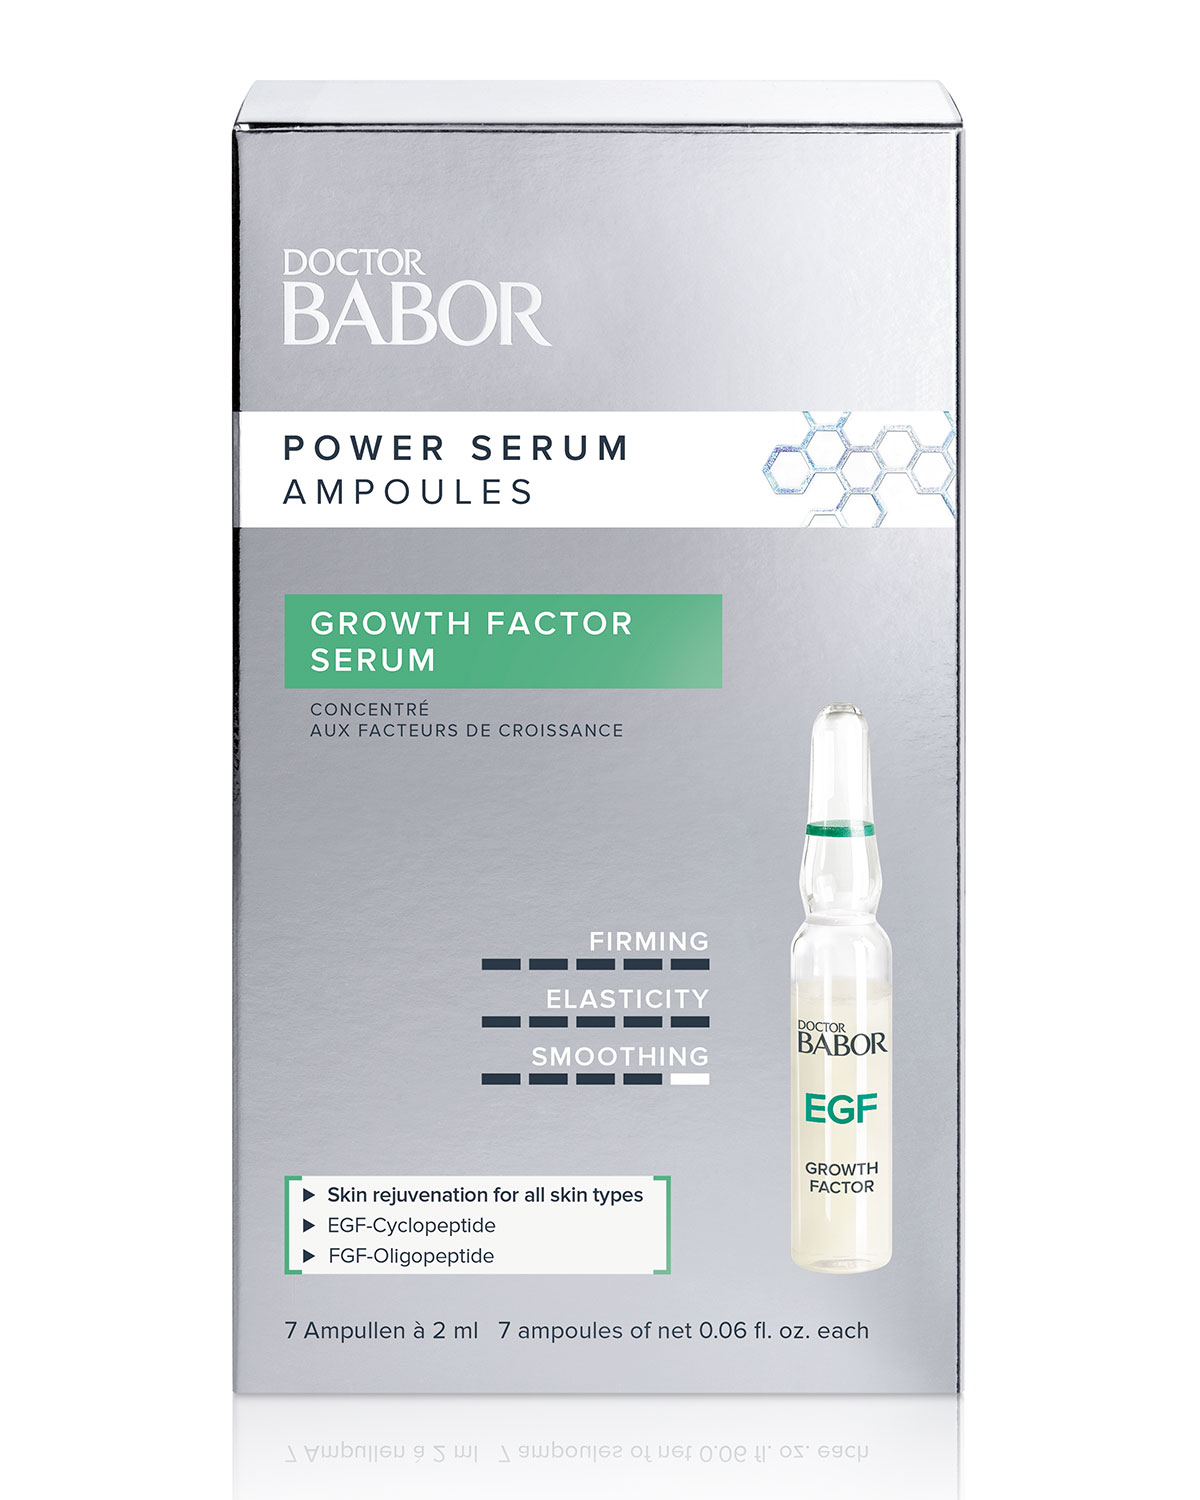 BABOR POWER SERUM AMPOULES Growth Factor Serum